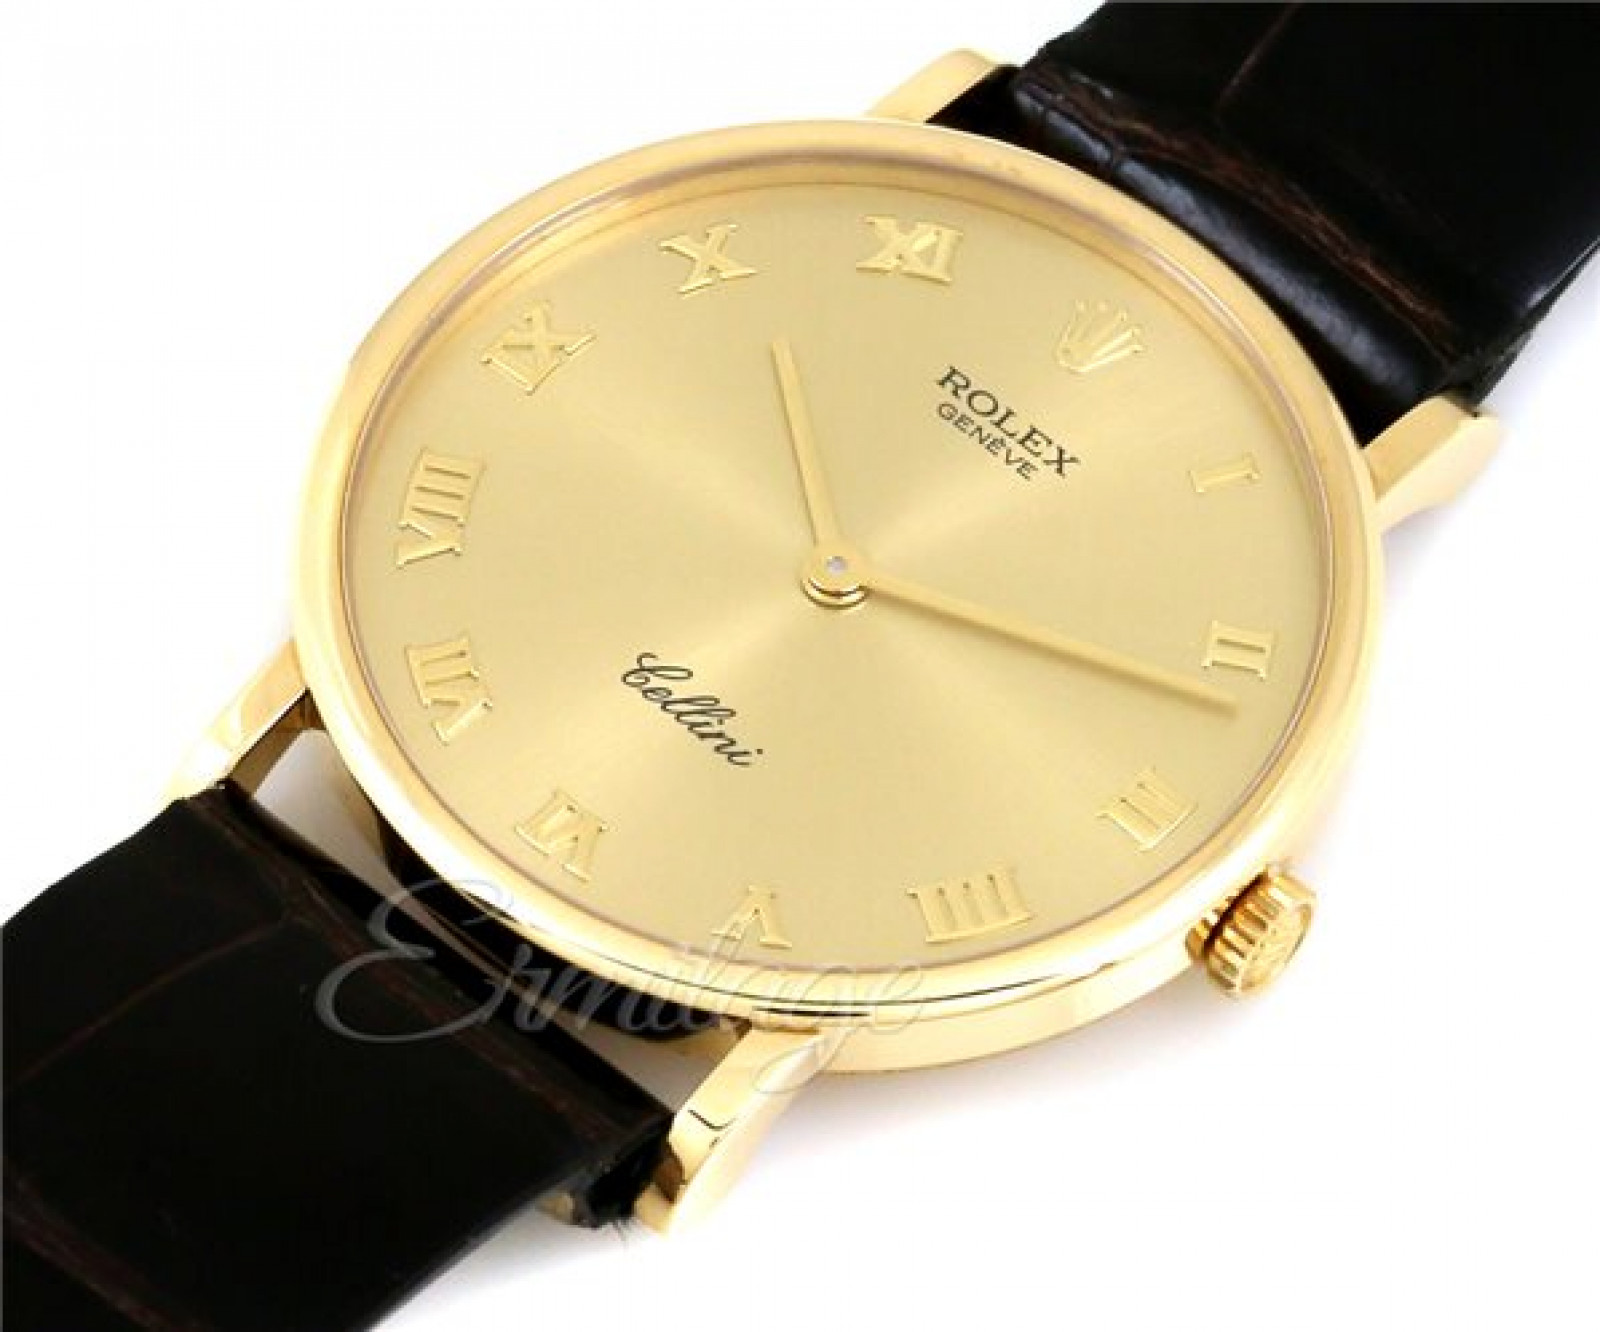 Rolex Cellini 5112 Gold Year 2000